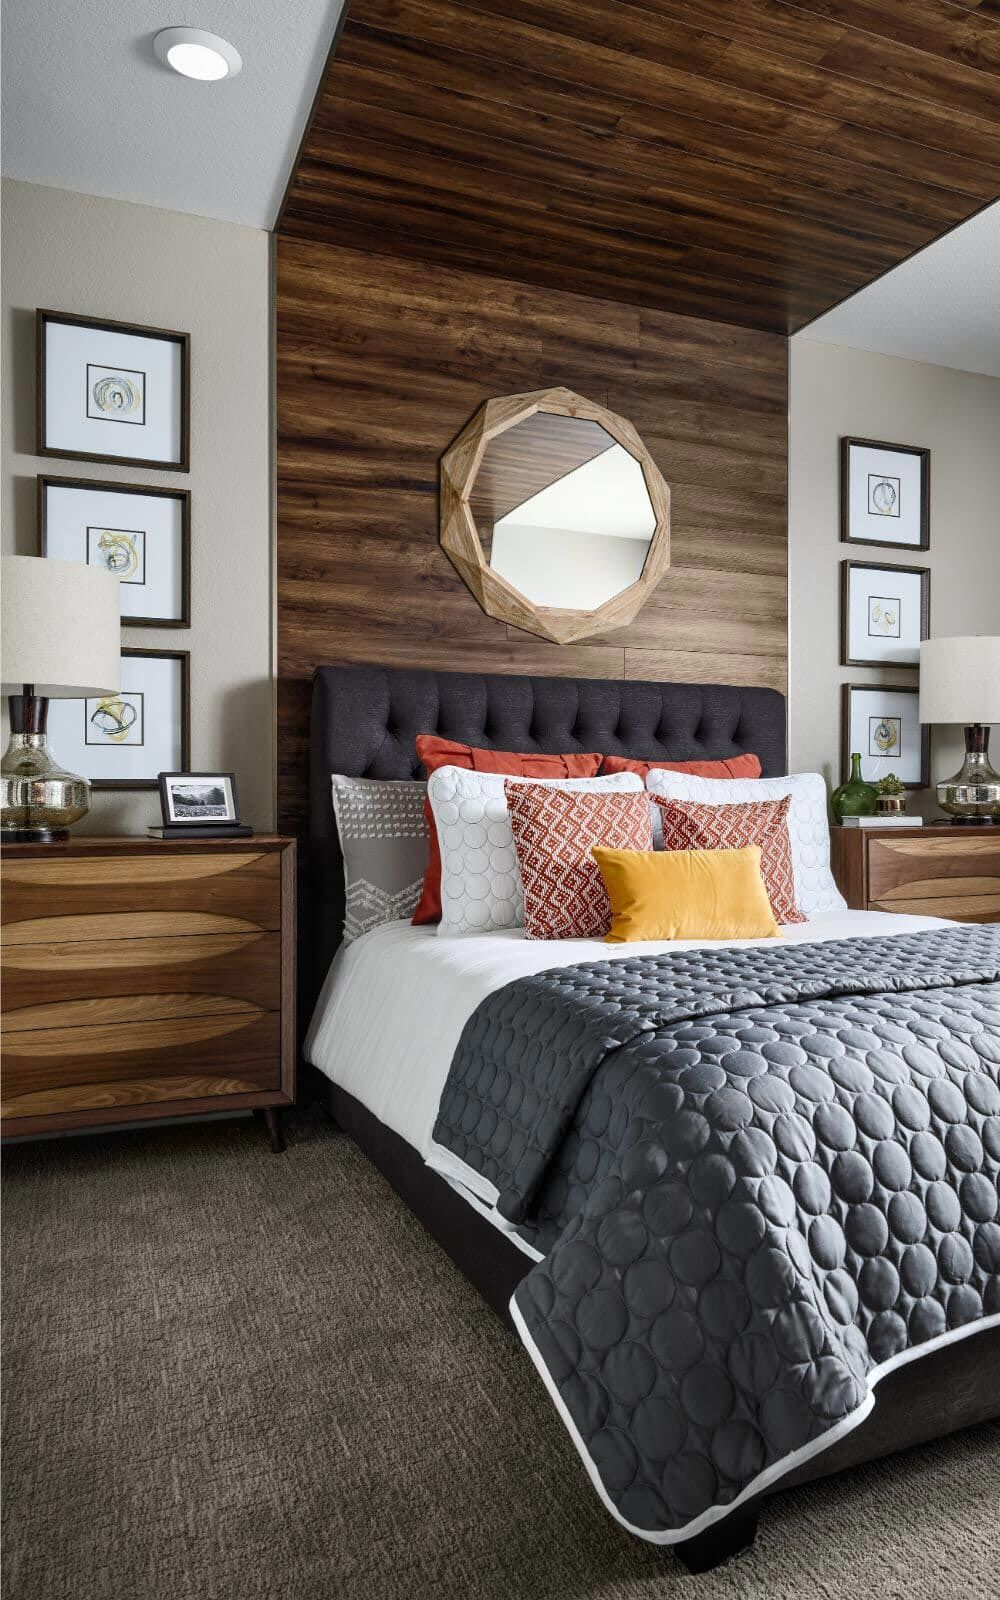 Bedroom featured in the Ovation 1 By Brookfield Residential  in Boulder-Longmont, CO